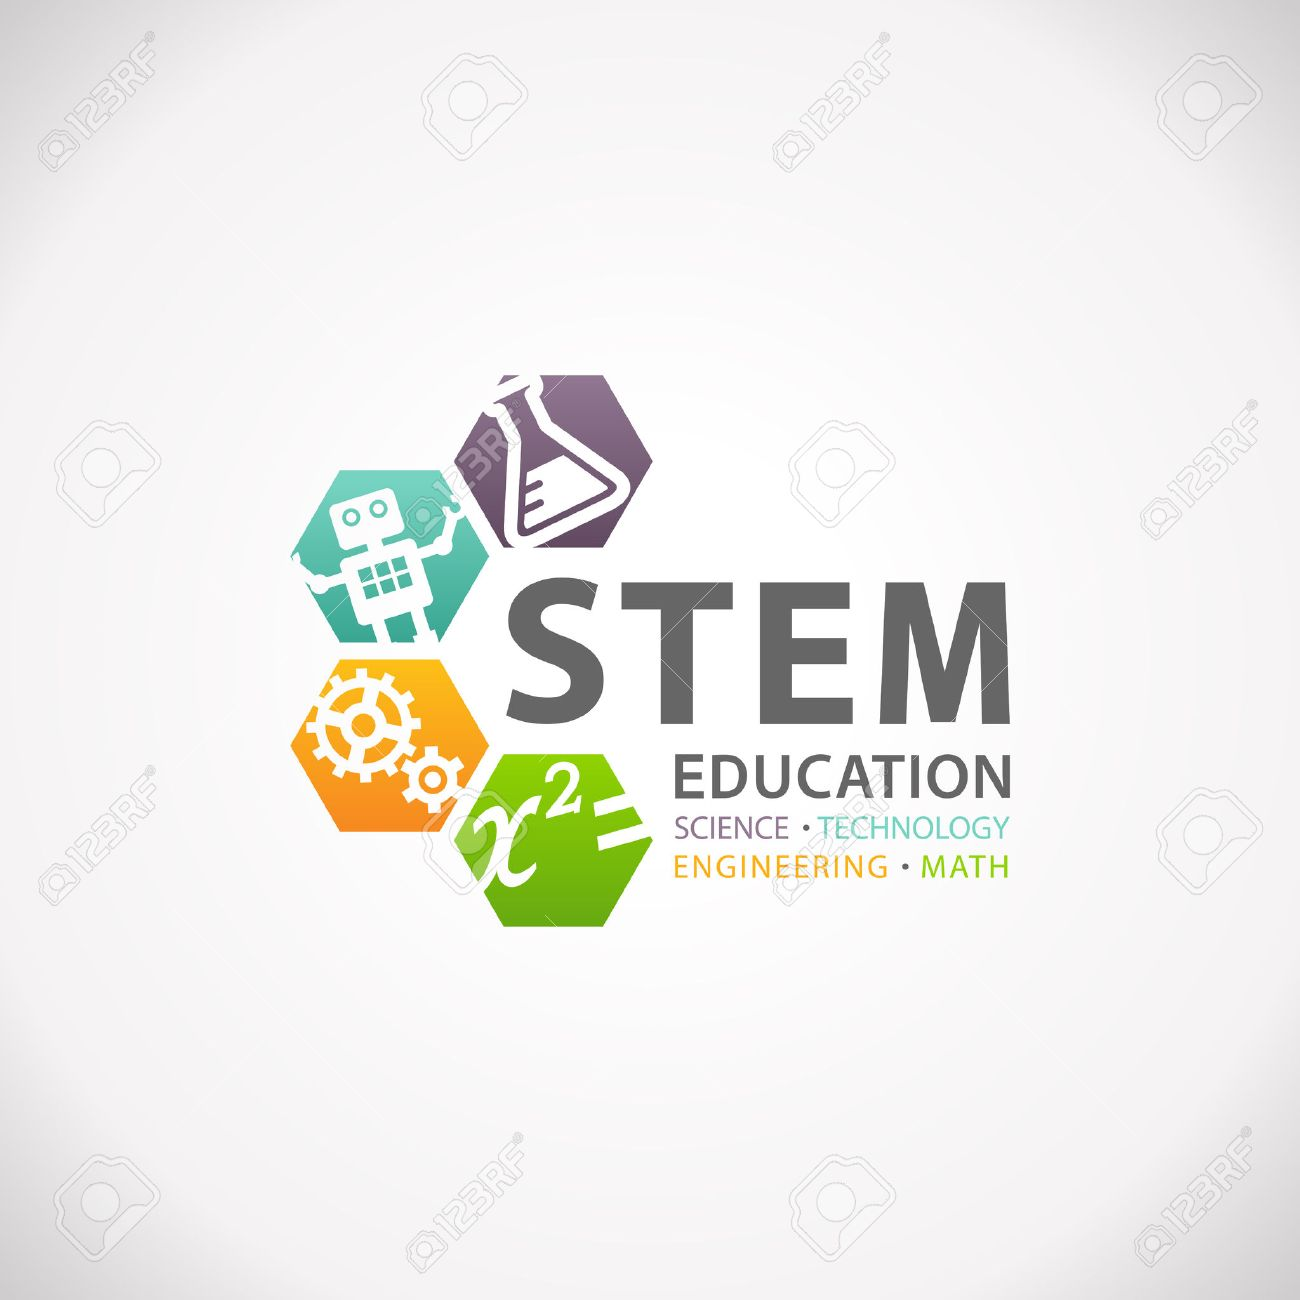 Stem Education Concept Logo Science Technology Engineering Mathematics Stock Photo Picture And Royalty Free Image Image 66088151